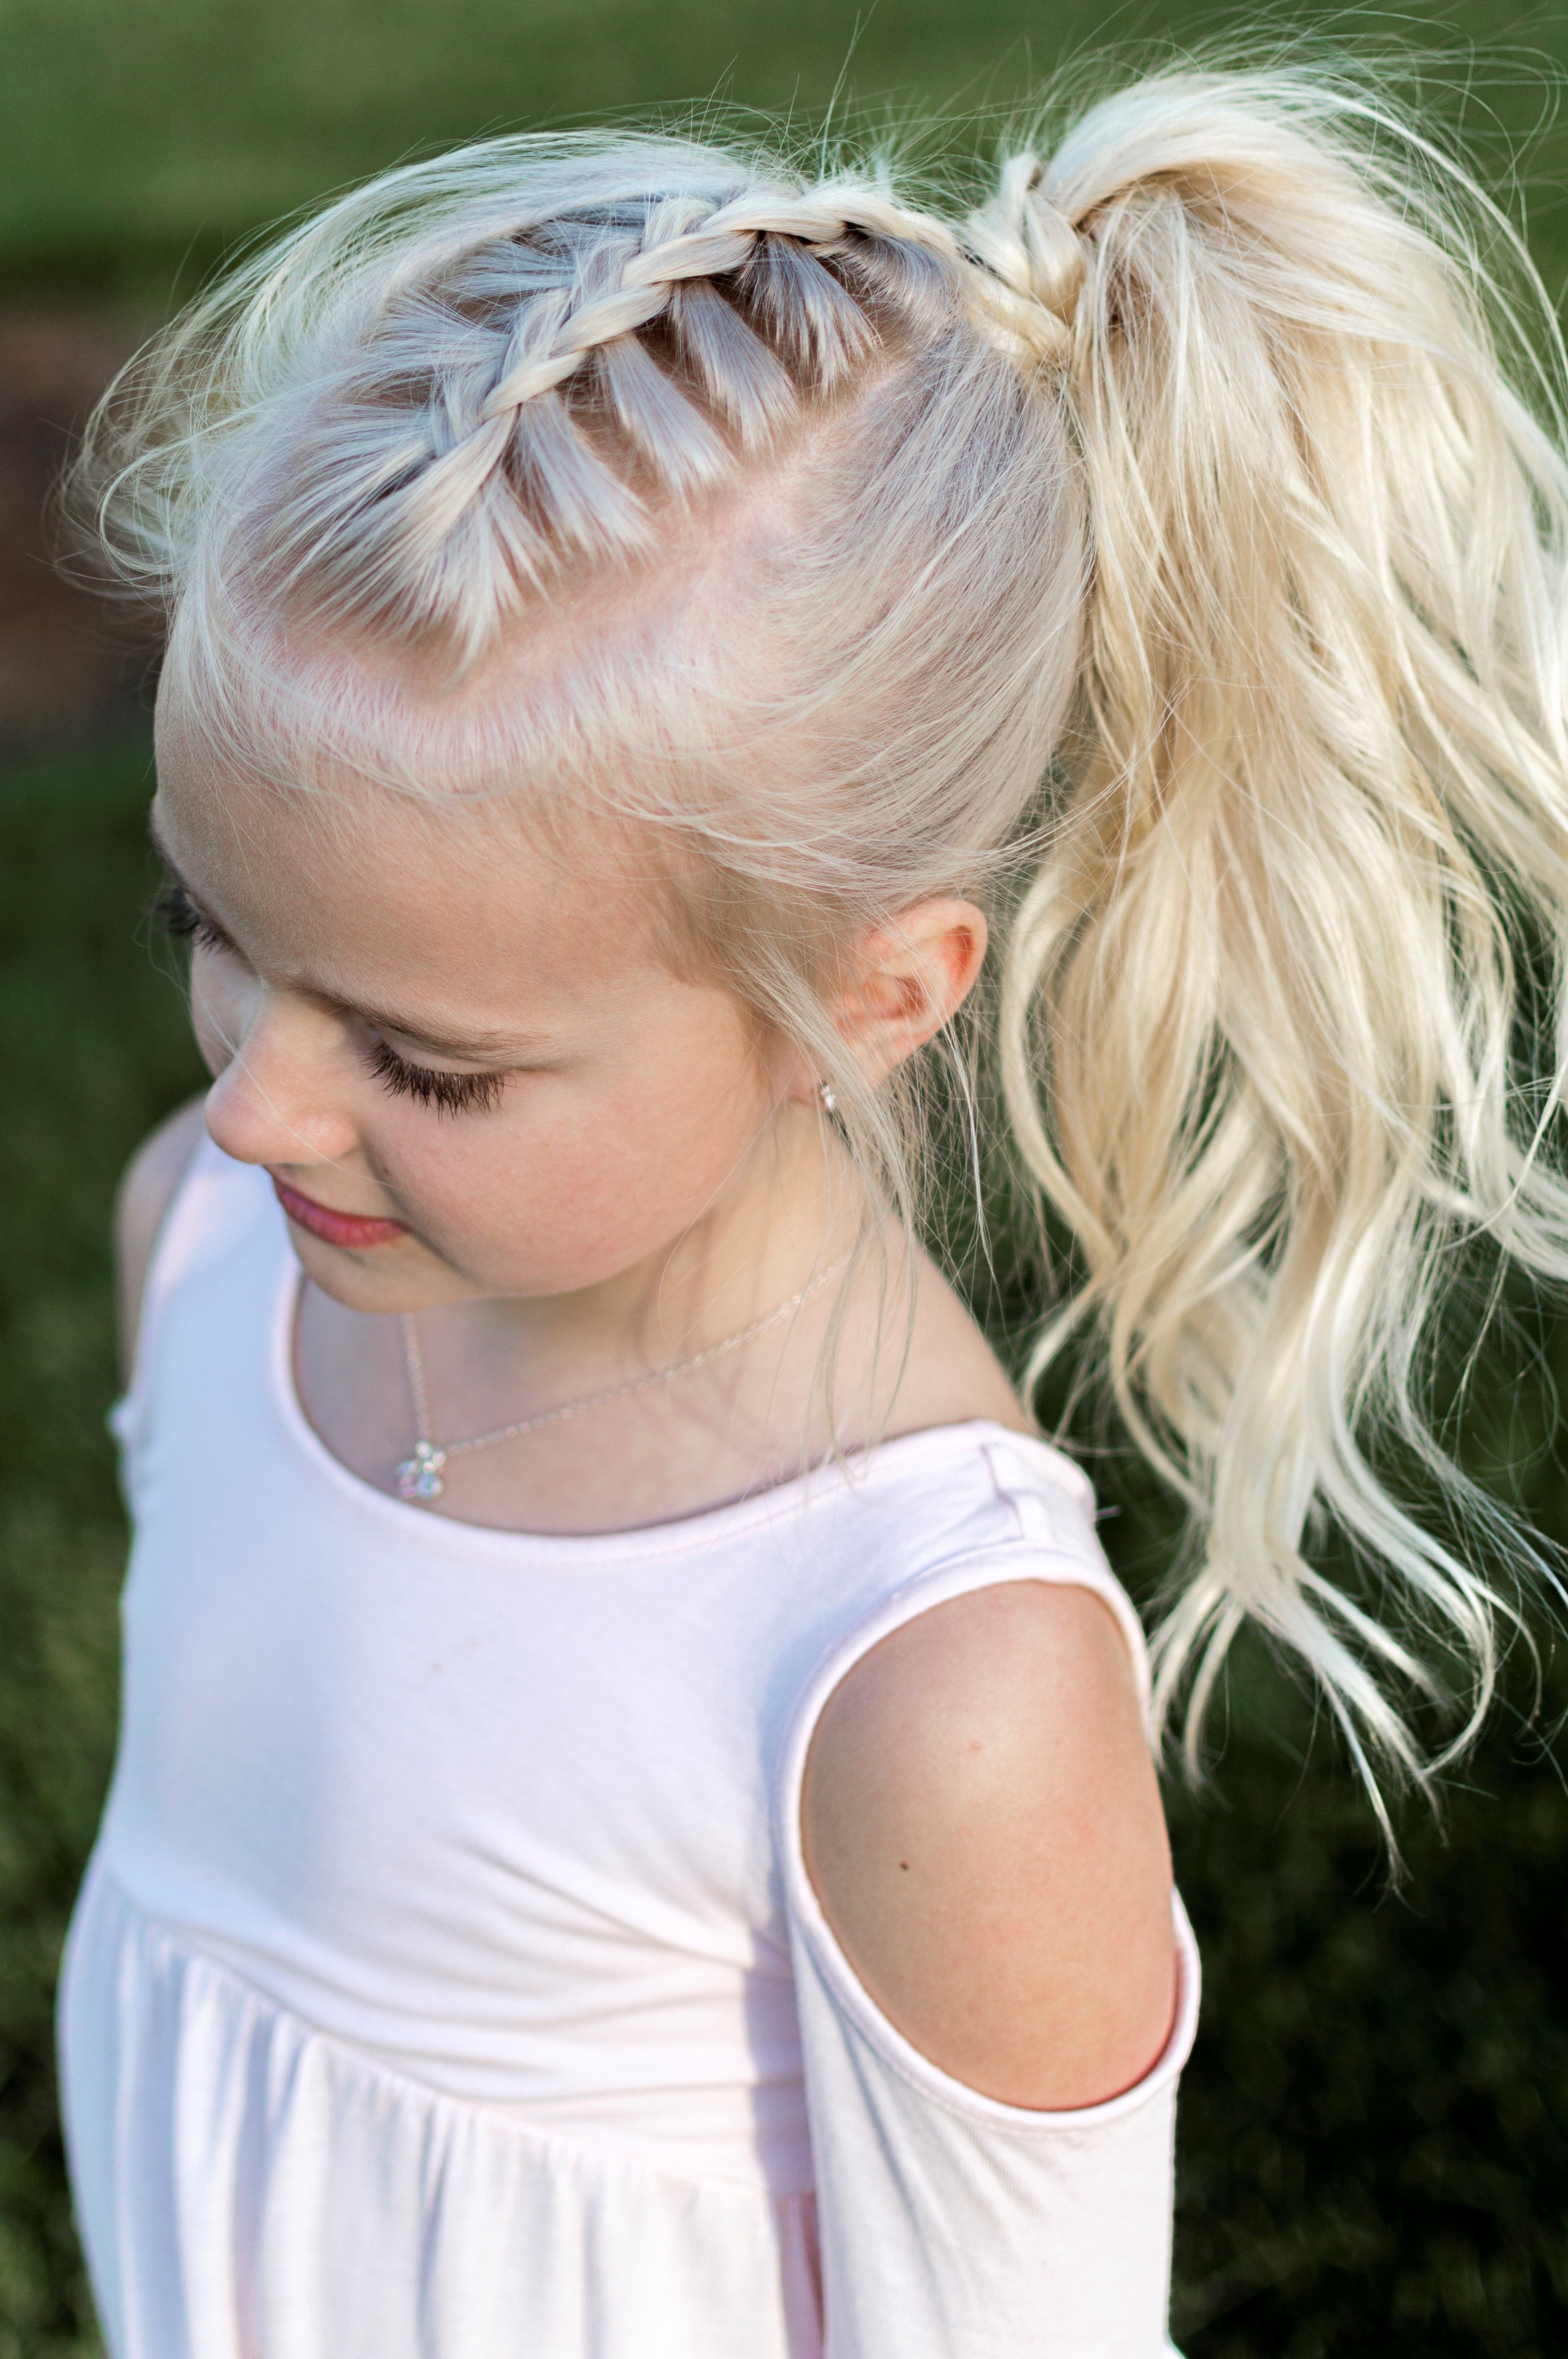 Little Girl Hairstyle French Braid Pony Tail Curls High Pony Regarding Most Up To Date Easy High Pony Hairstyles For Curly Hair (View 12 of 20)